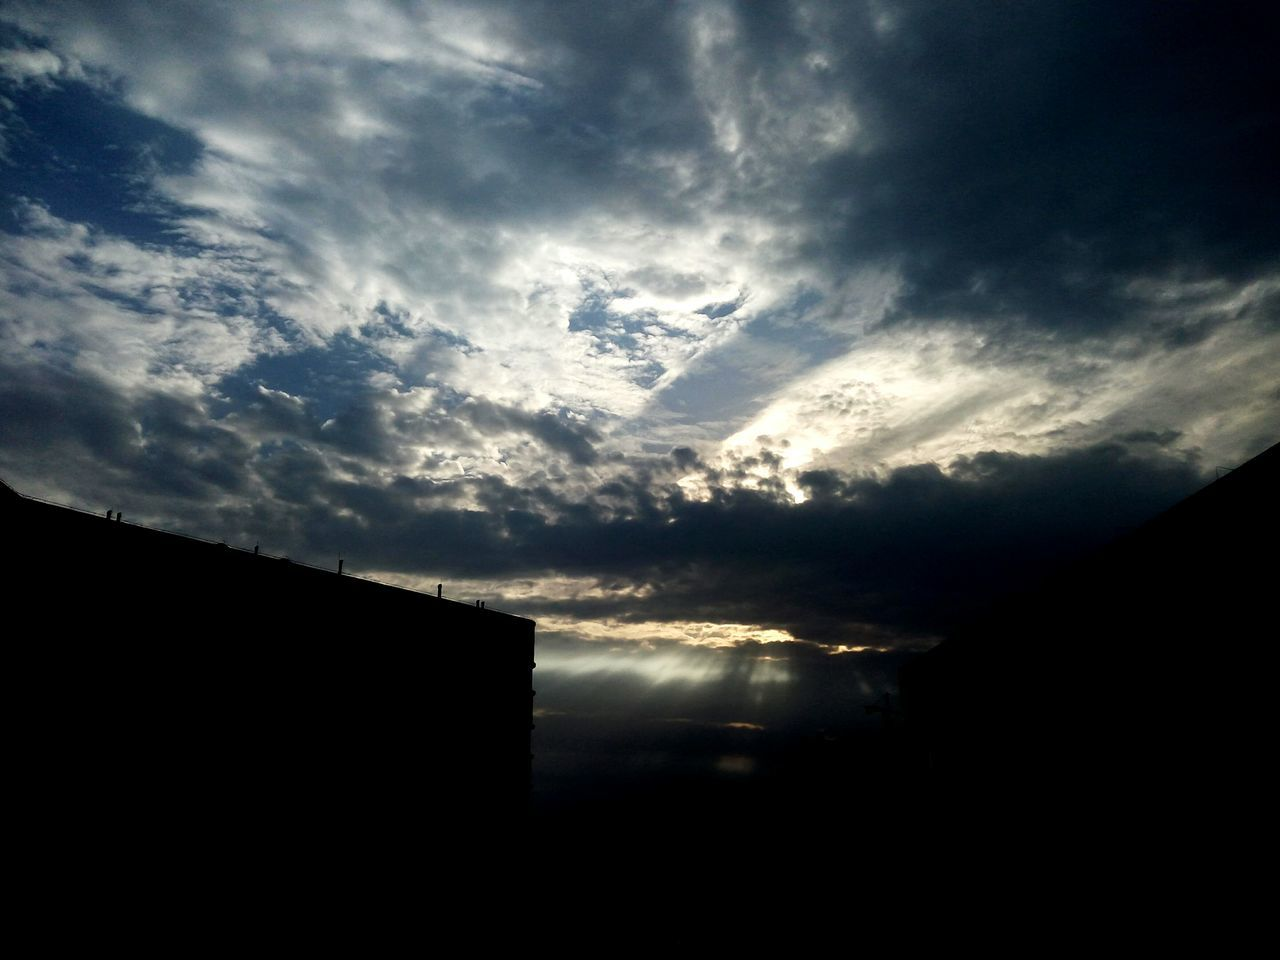 sky, no people, tranquility, tranquil scene, cloud - sky, beauty in nature, nature, outdoors, scenics, silhouette, sunset, day